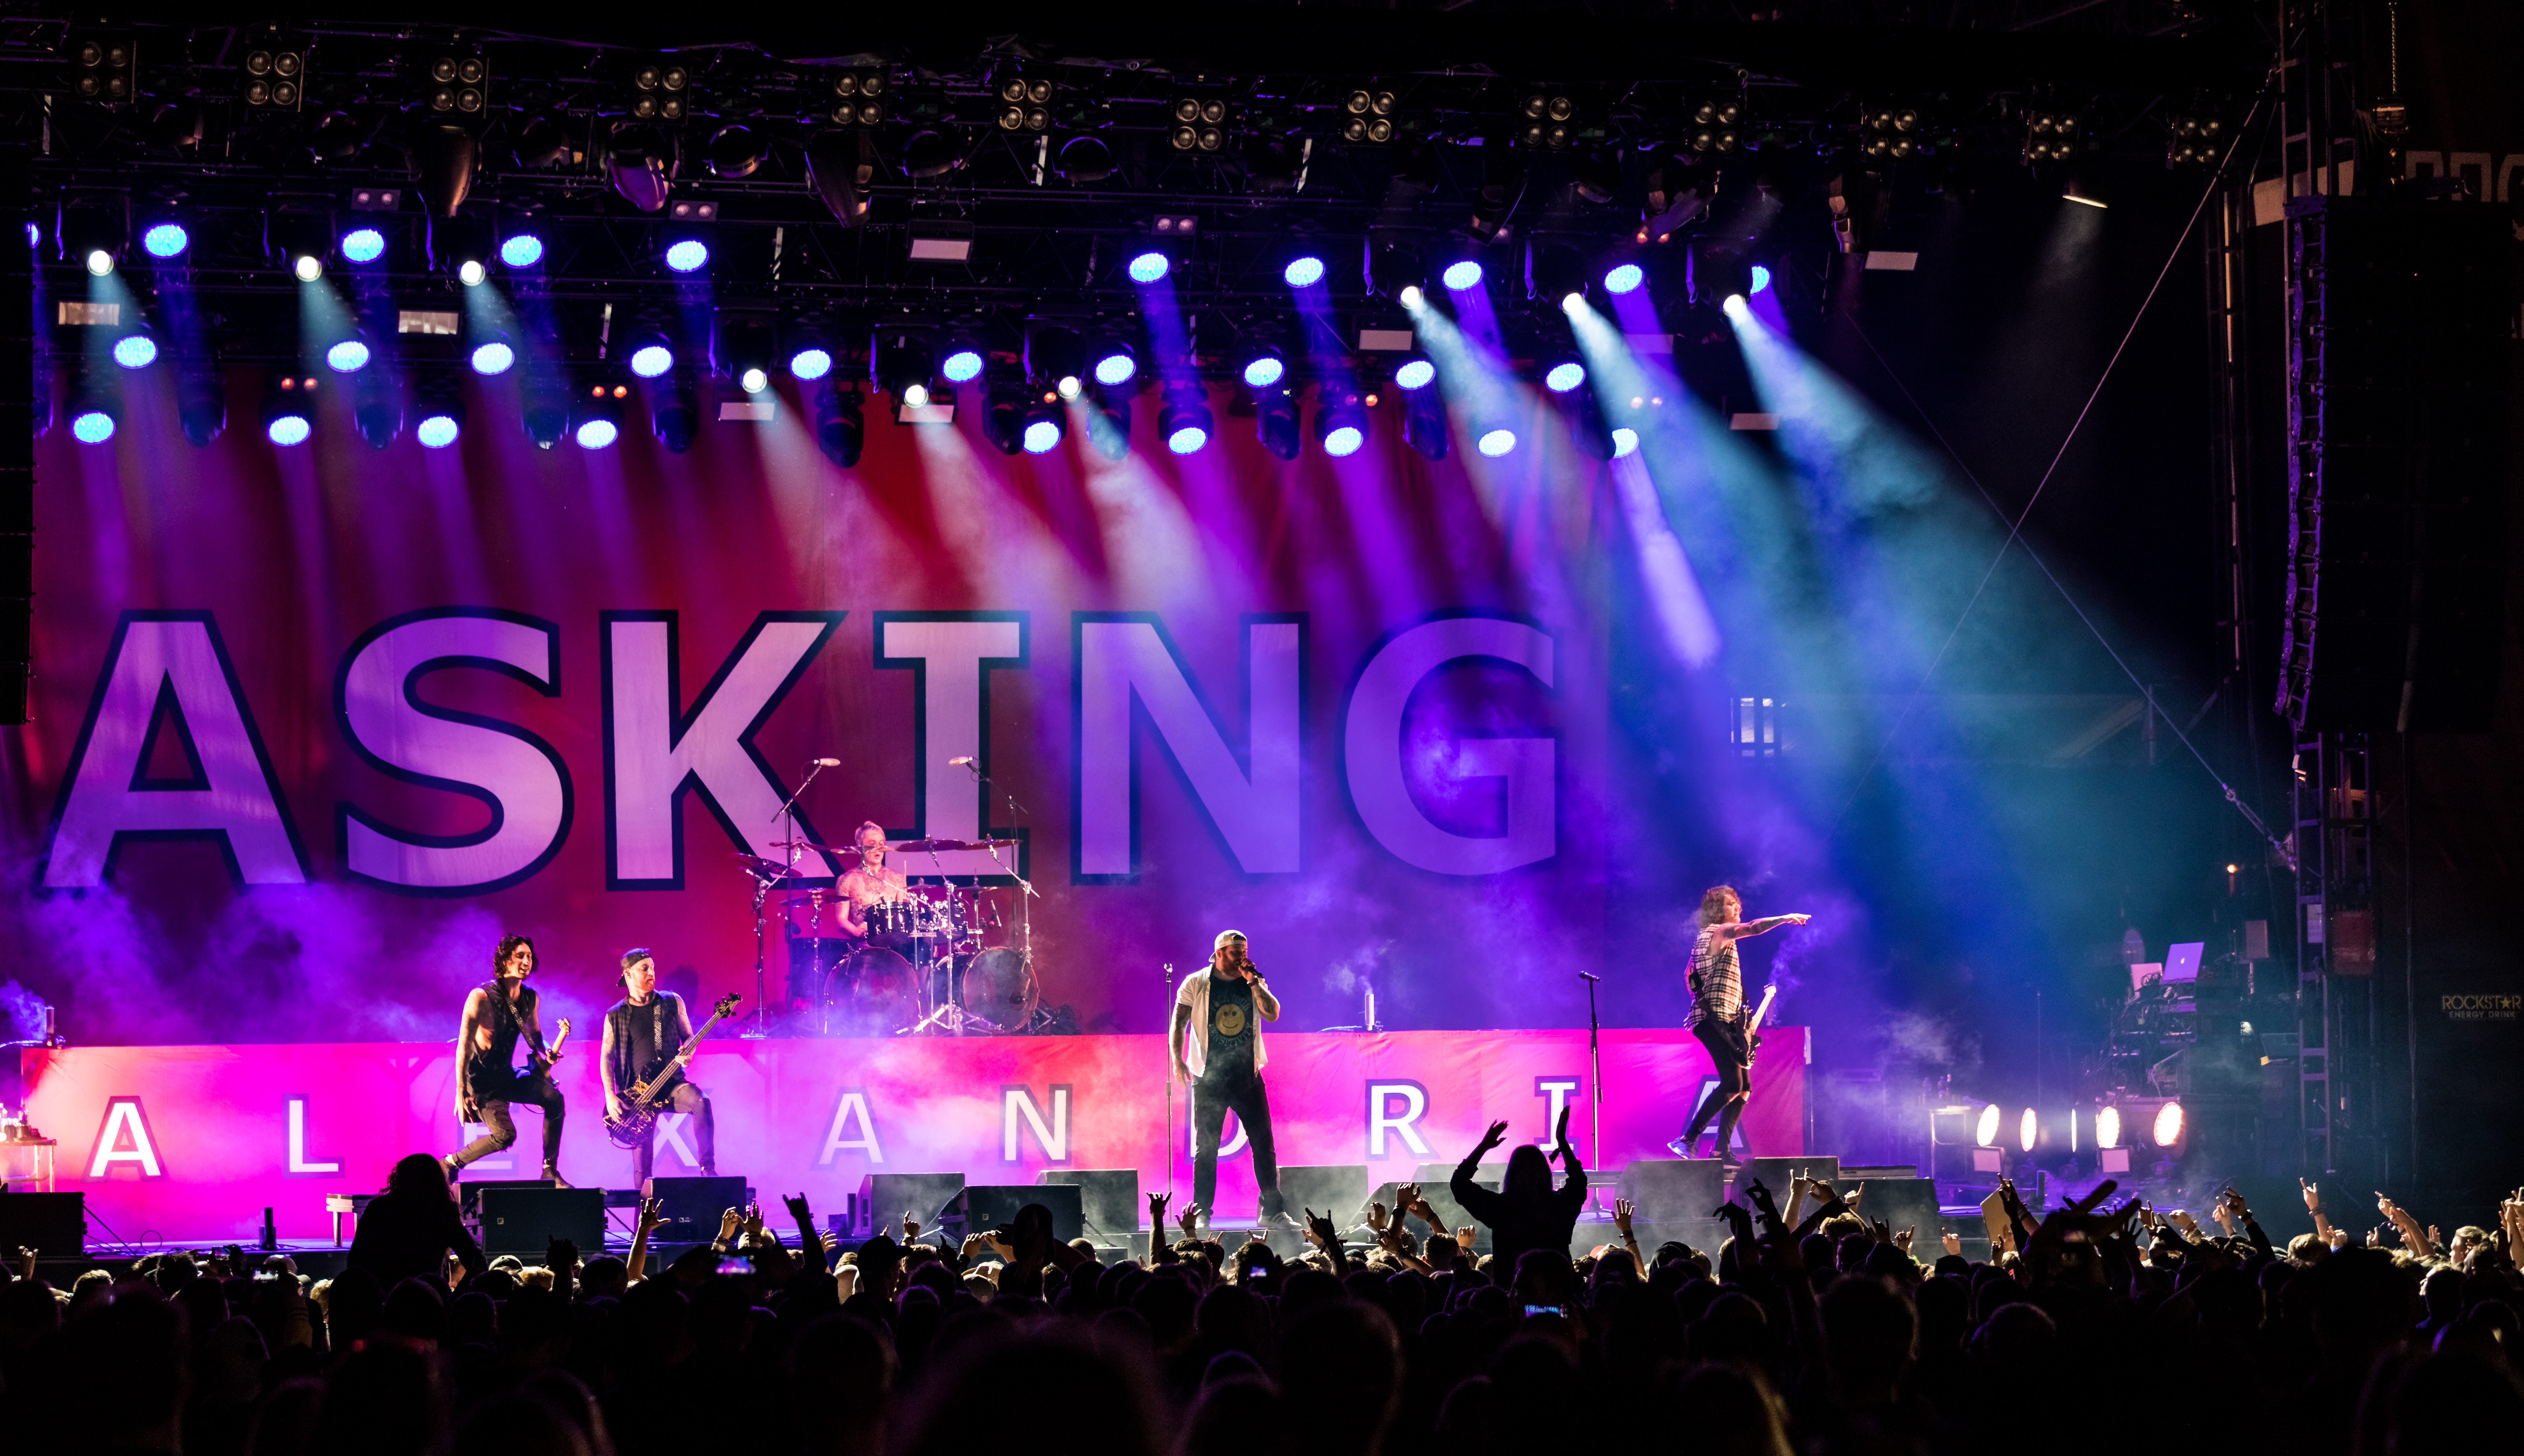 Asking Alexandria Wikipedia